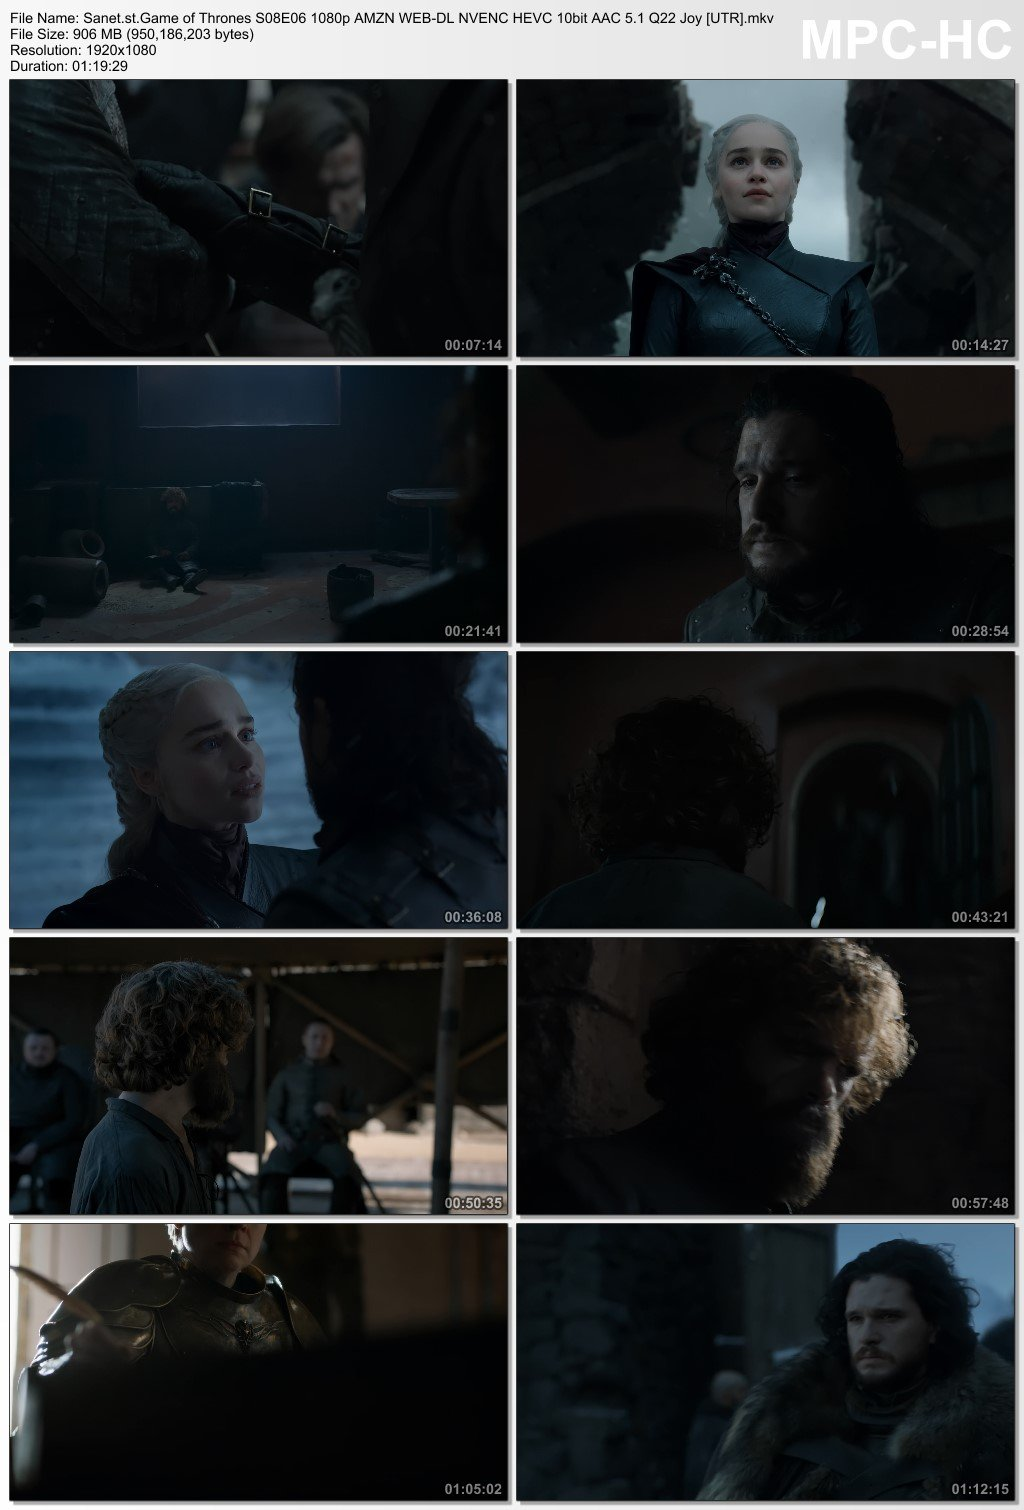 Download Game of Thrones S08E06 1080p AMZN WEB-DL NVENC HEVC